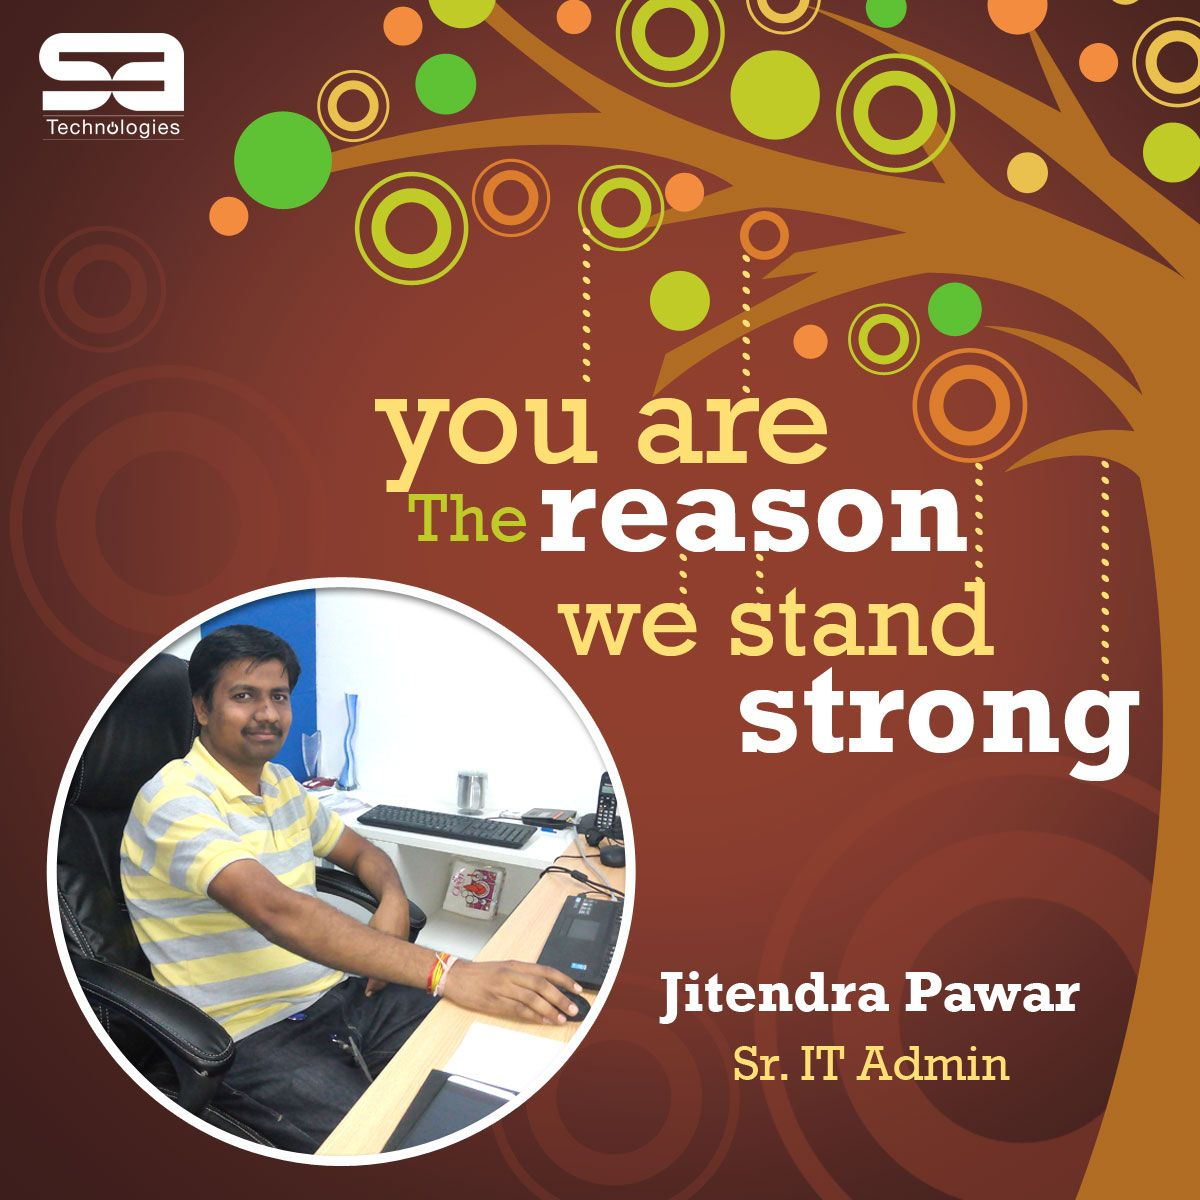 congratulations to jitendra pawar on completing years sa congratulations to jitendra pawar on completing 5 years sa technologies inc we want to